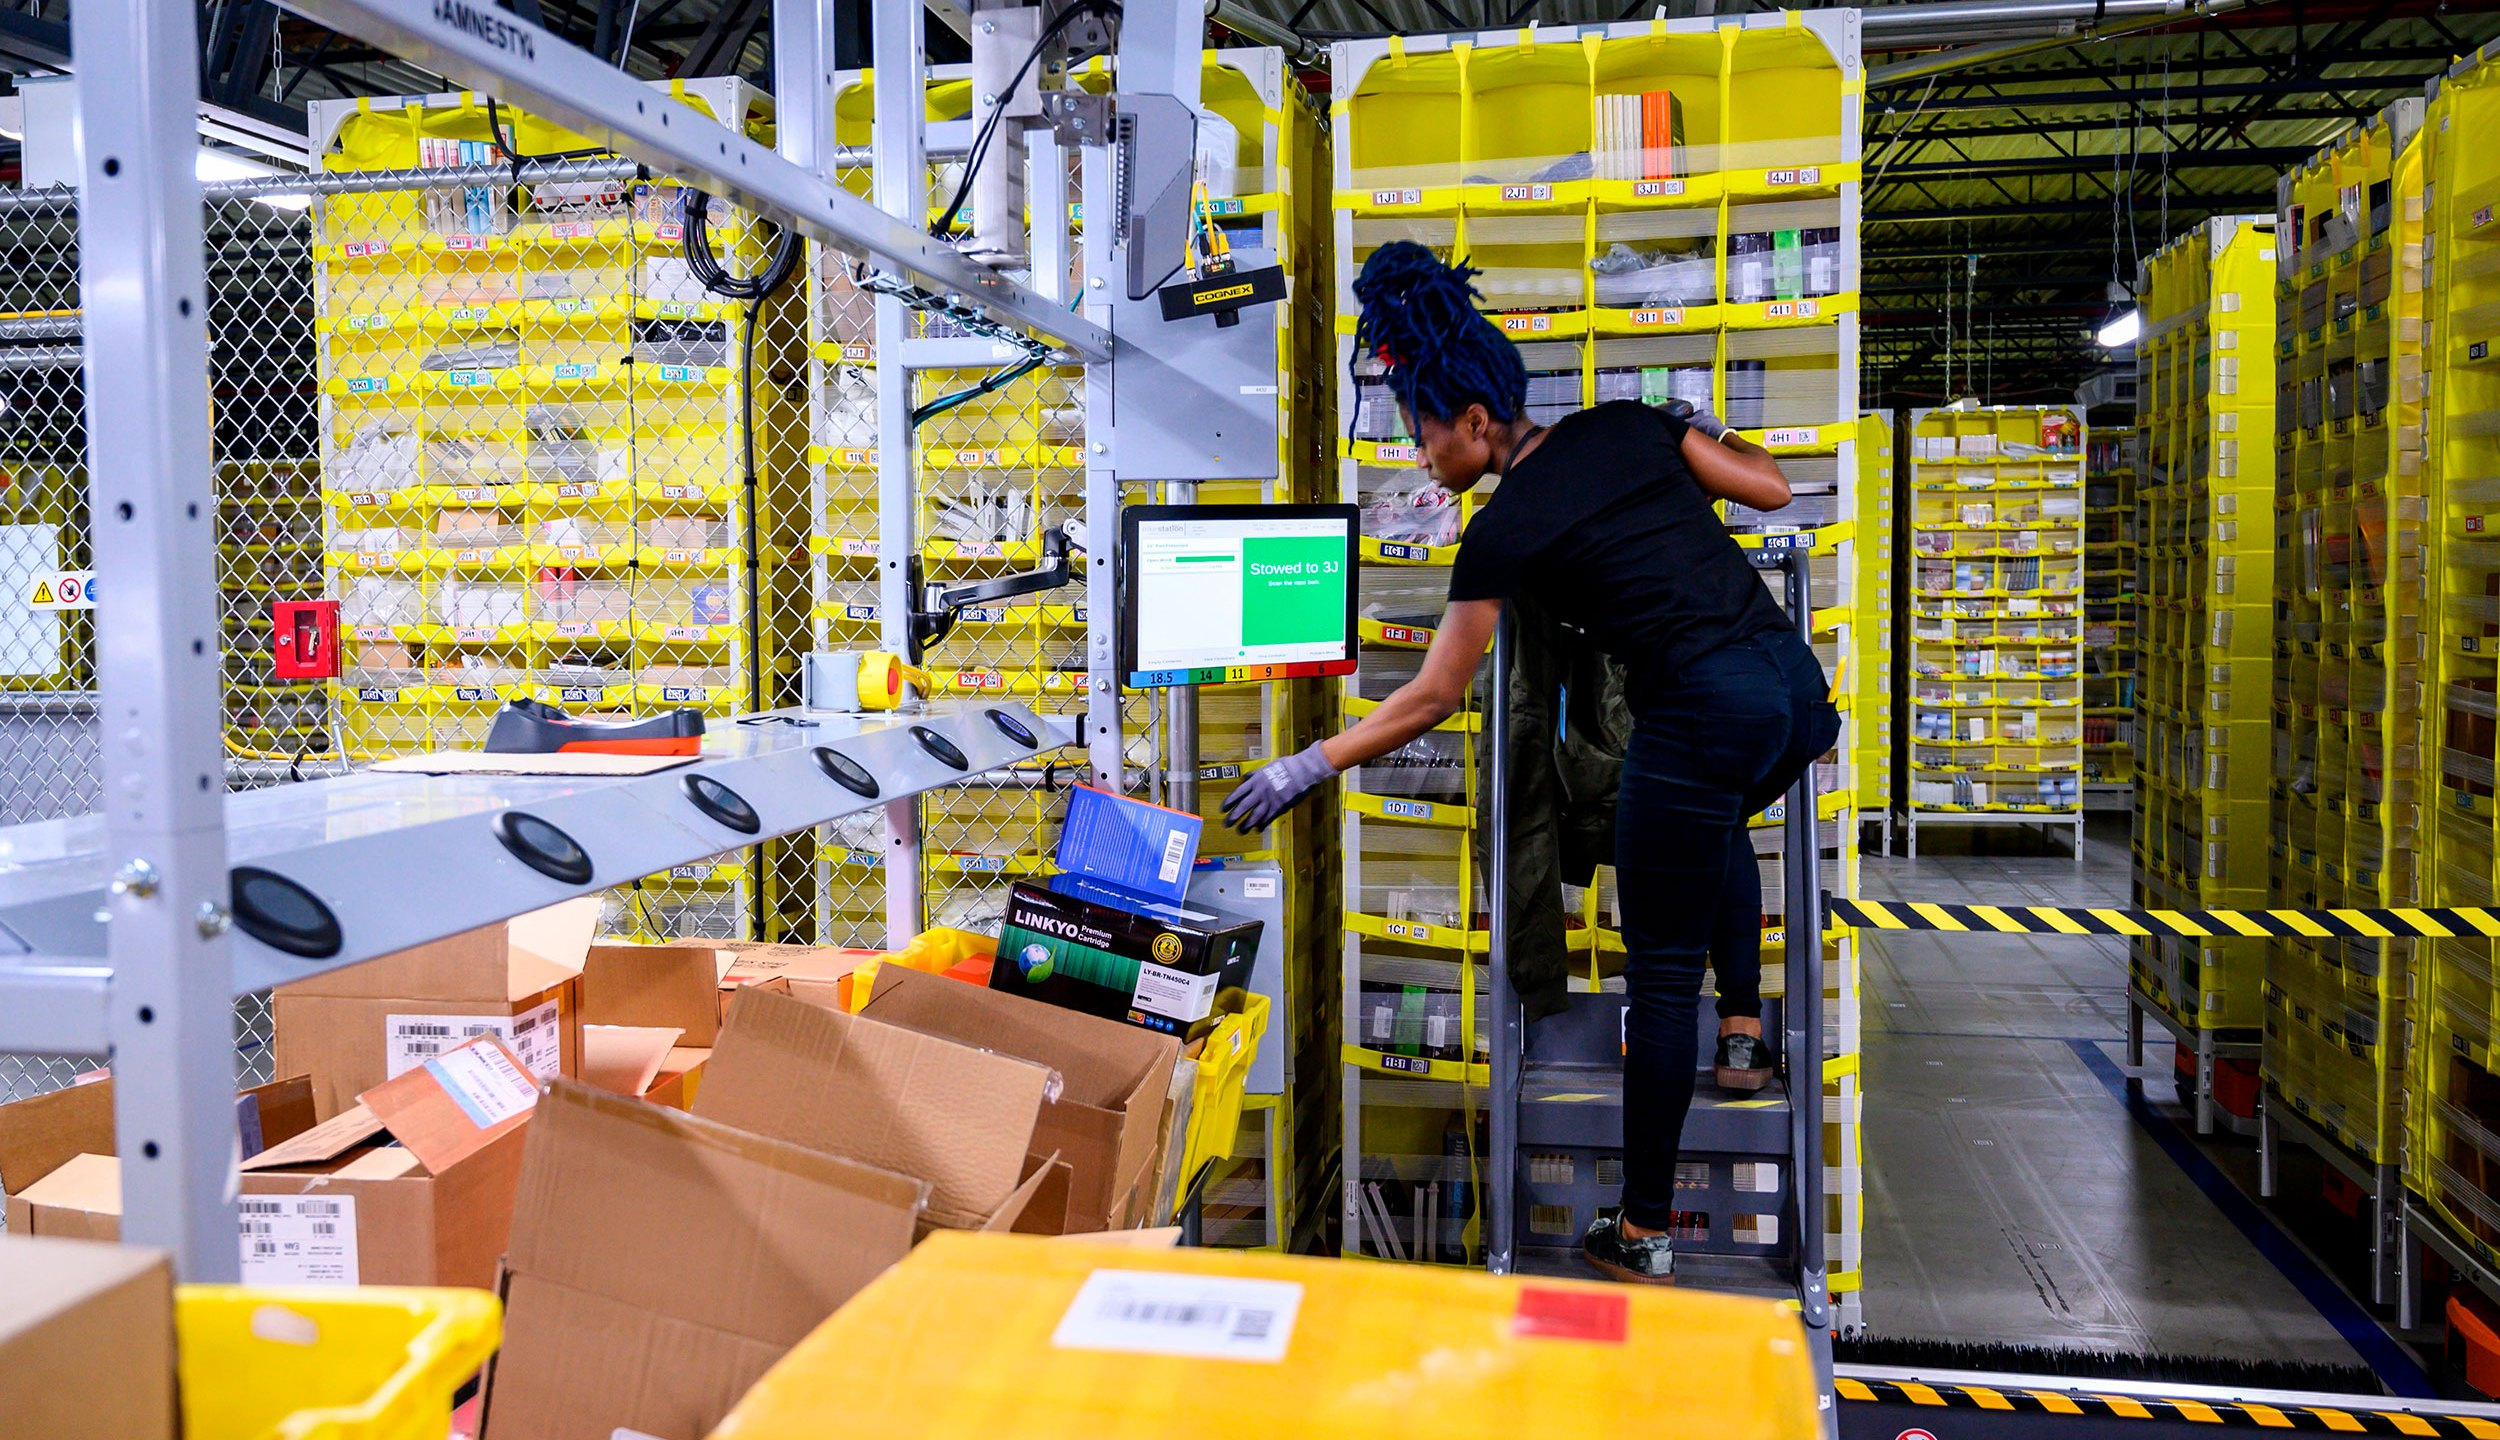 Amazon employees at the company's Staten Island, New York, facility plan to walk off the job Monday amid allegations the online retail giant has mishandled its response to the coronavirus pandemic. (Johannes Eisele/AFP/Getty Images)